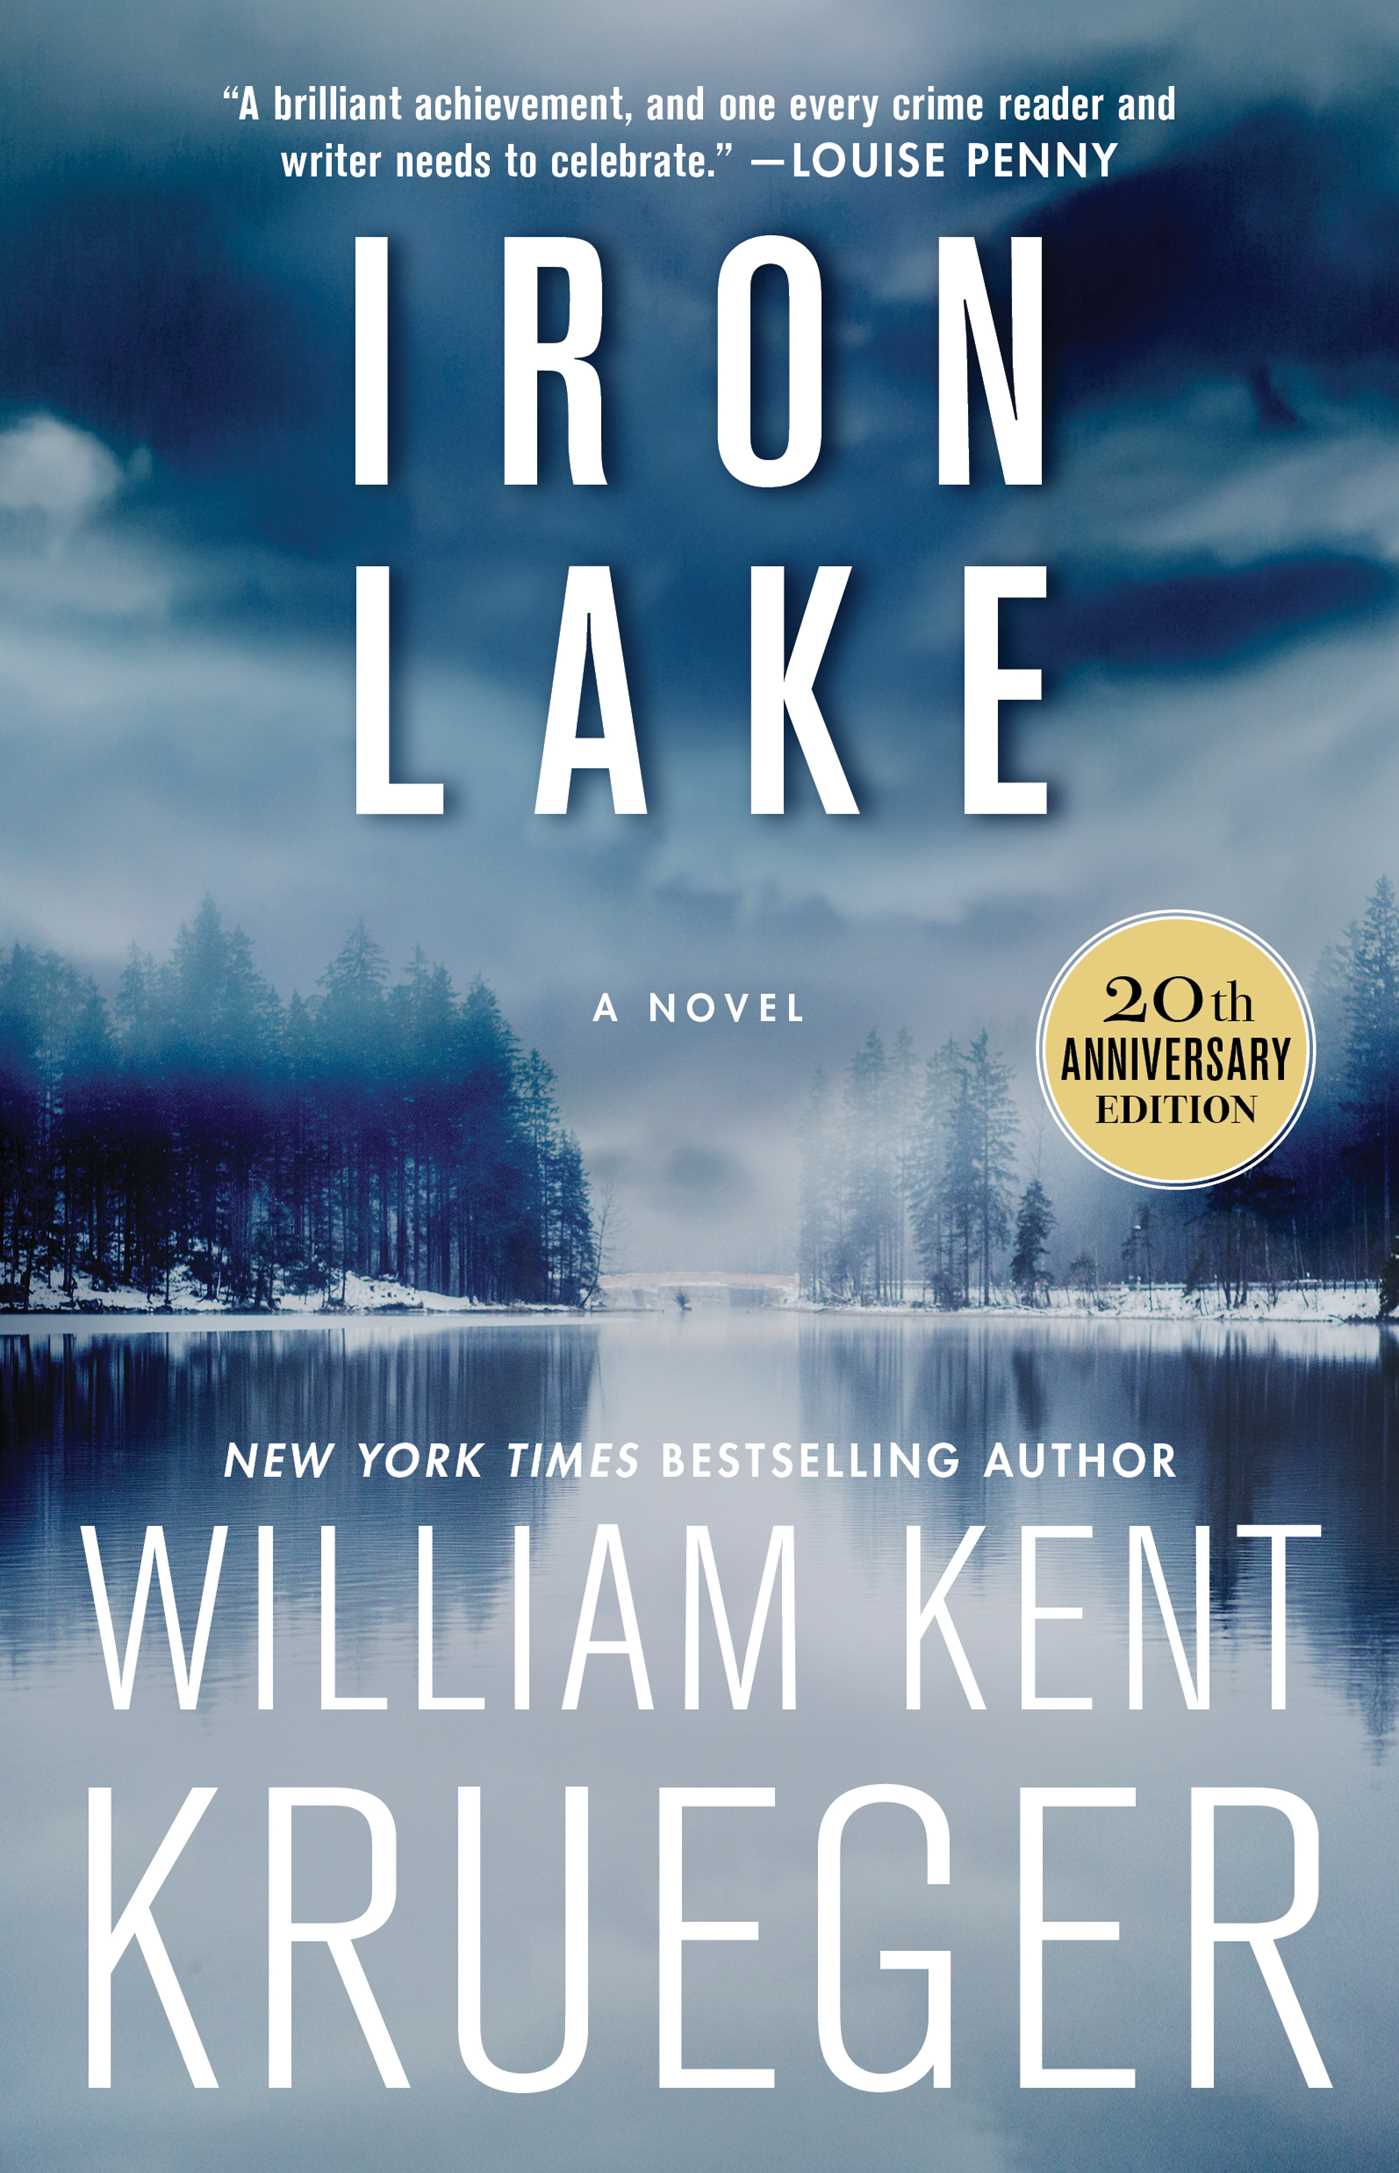 Iron-lake-9780671036904_hr